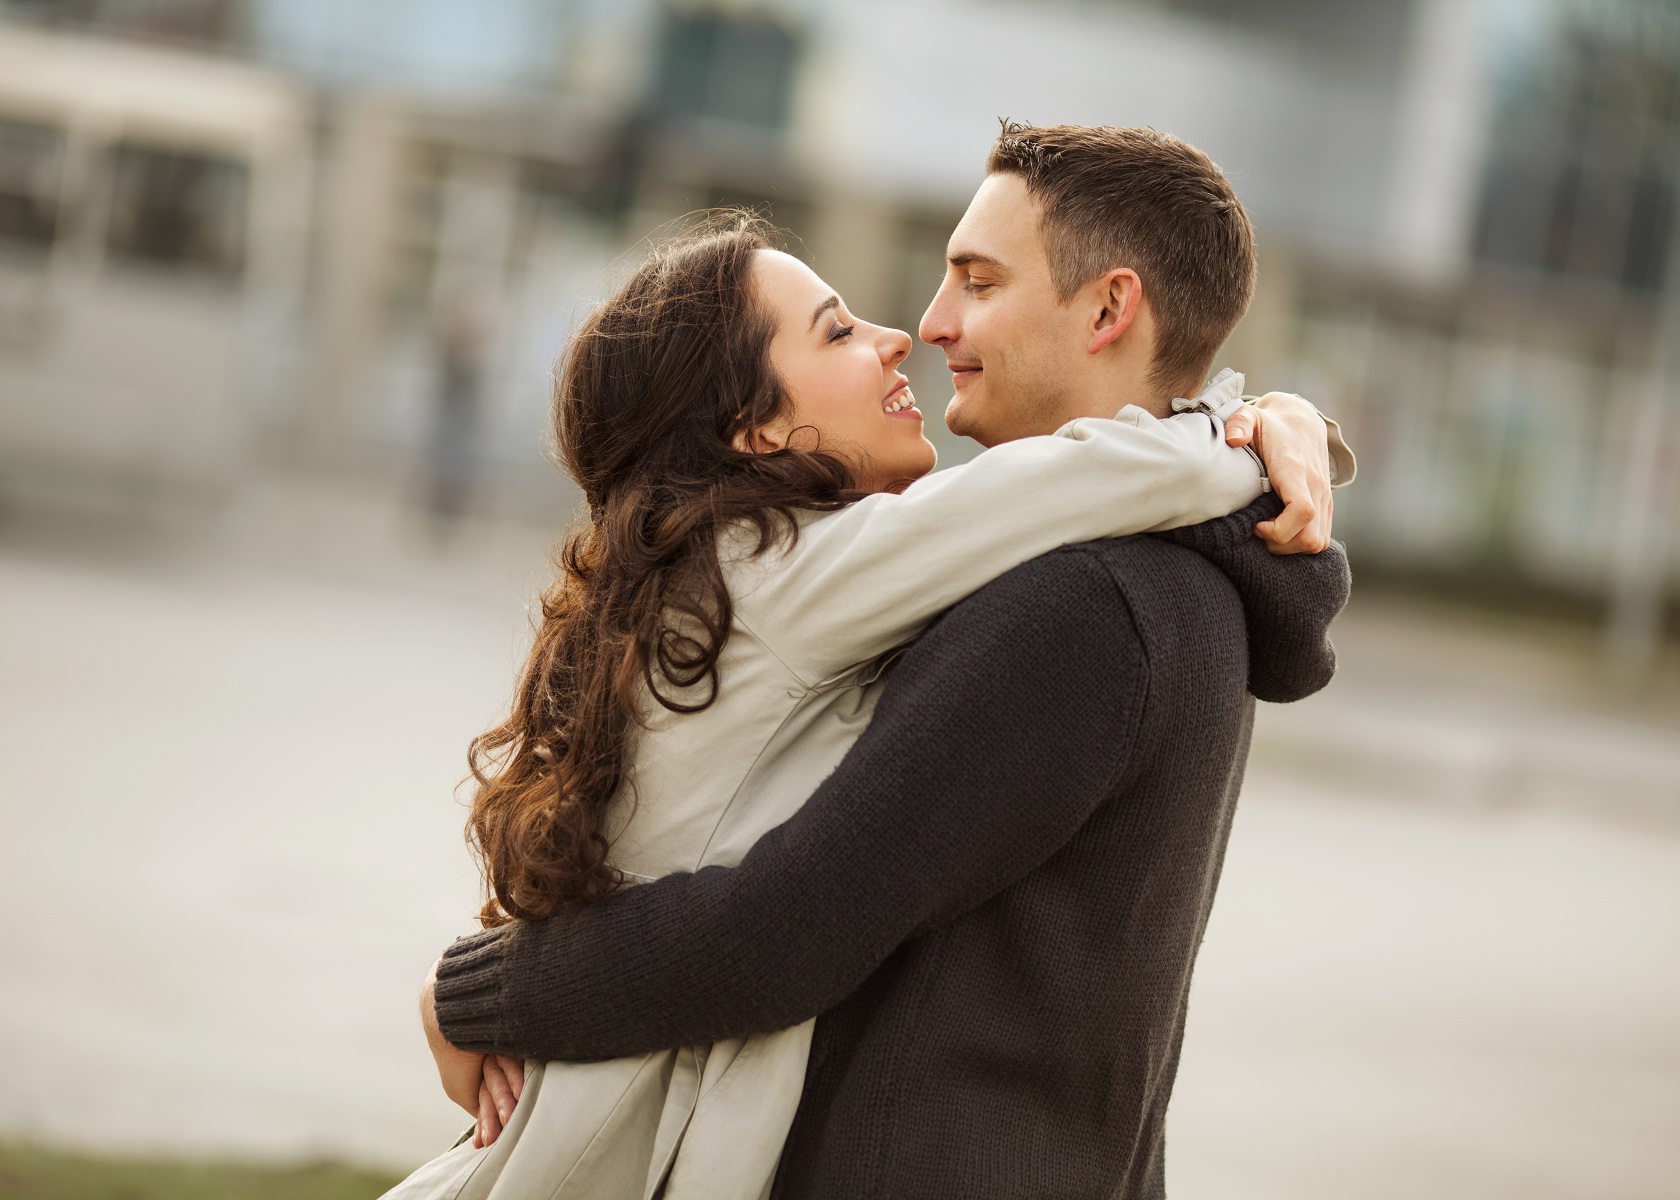 10 Amazing Benefits Of Hugging The Person You Love - The ...